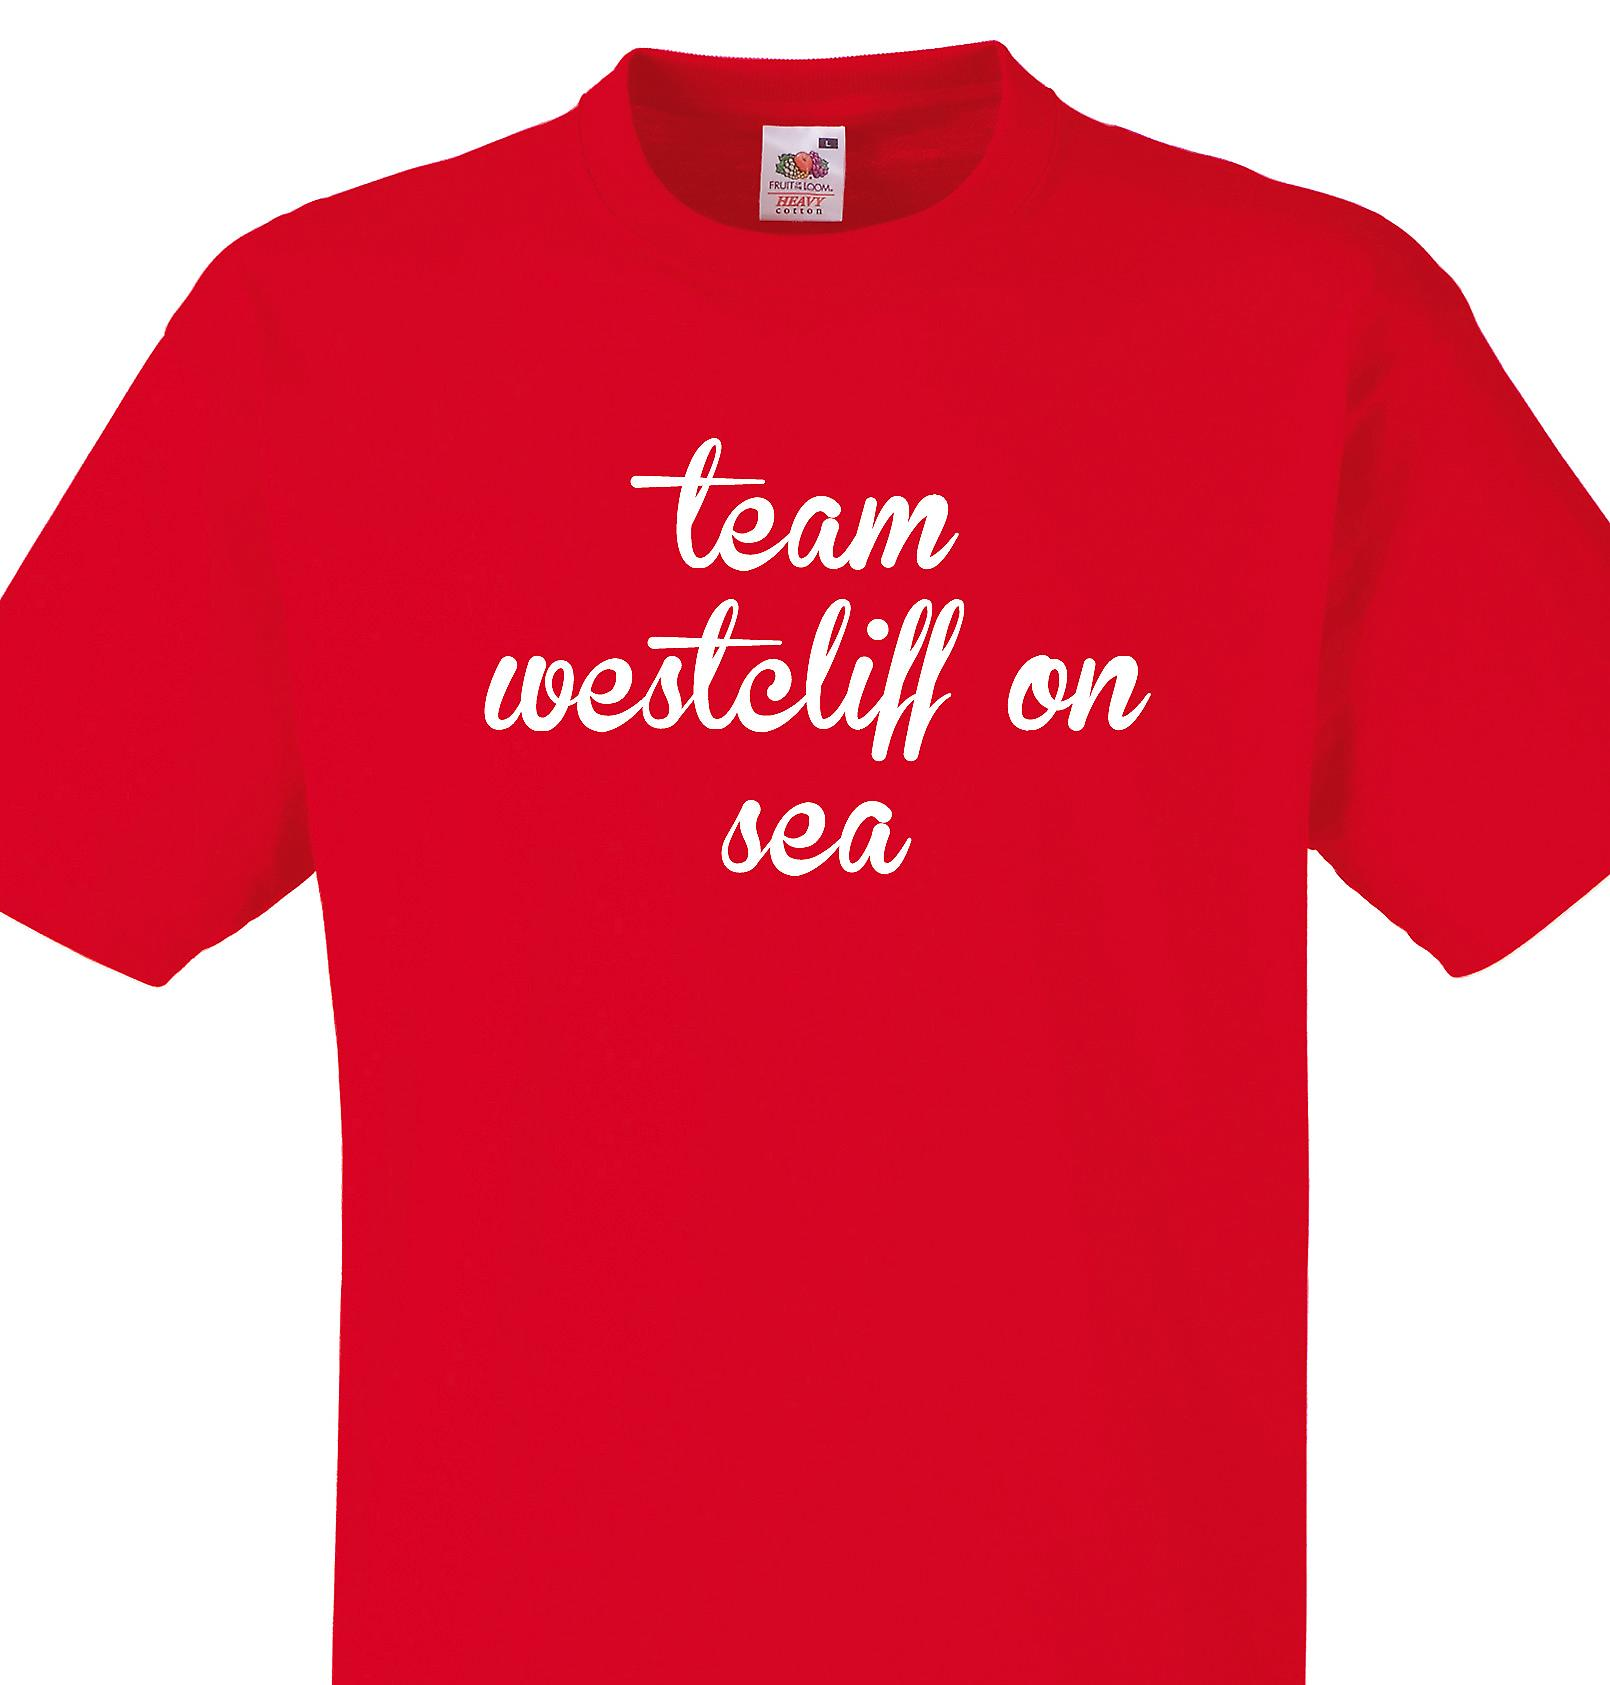 Team Westcliff on sea Red T shirt